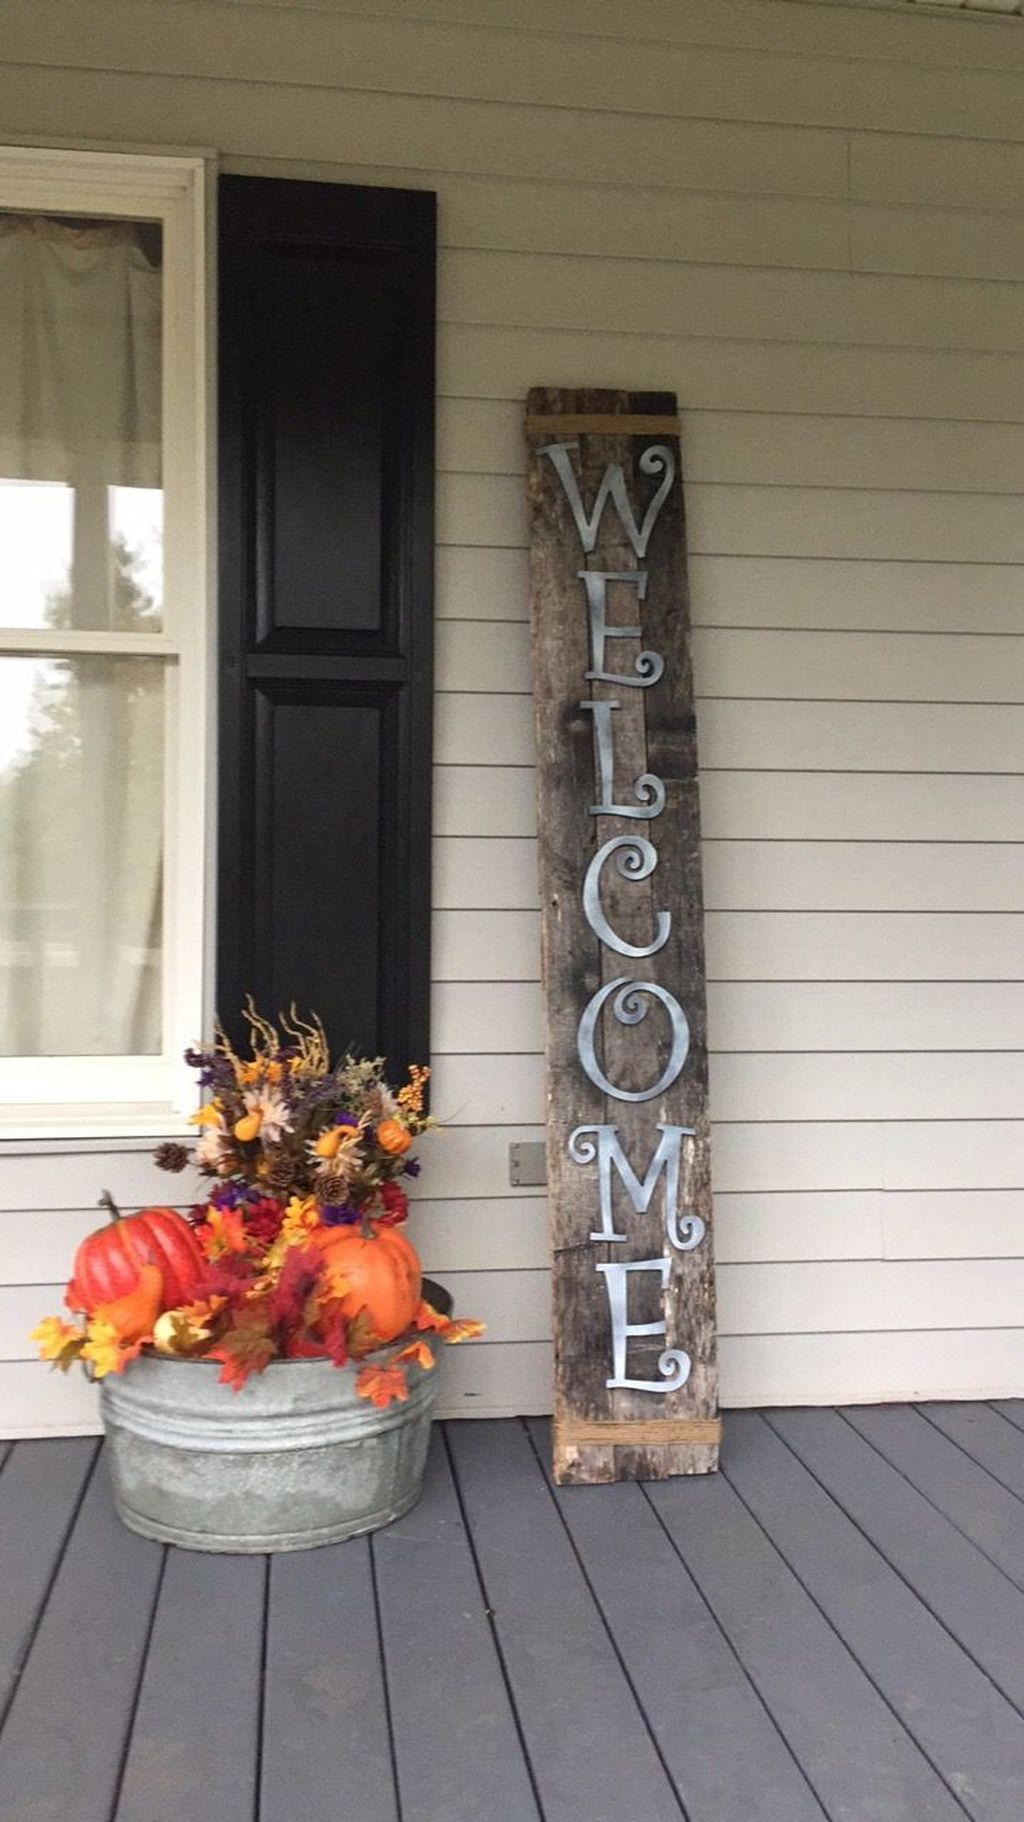 Inspiring Fall Pallet Signs Design Ideas For Your Home Decor 03